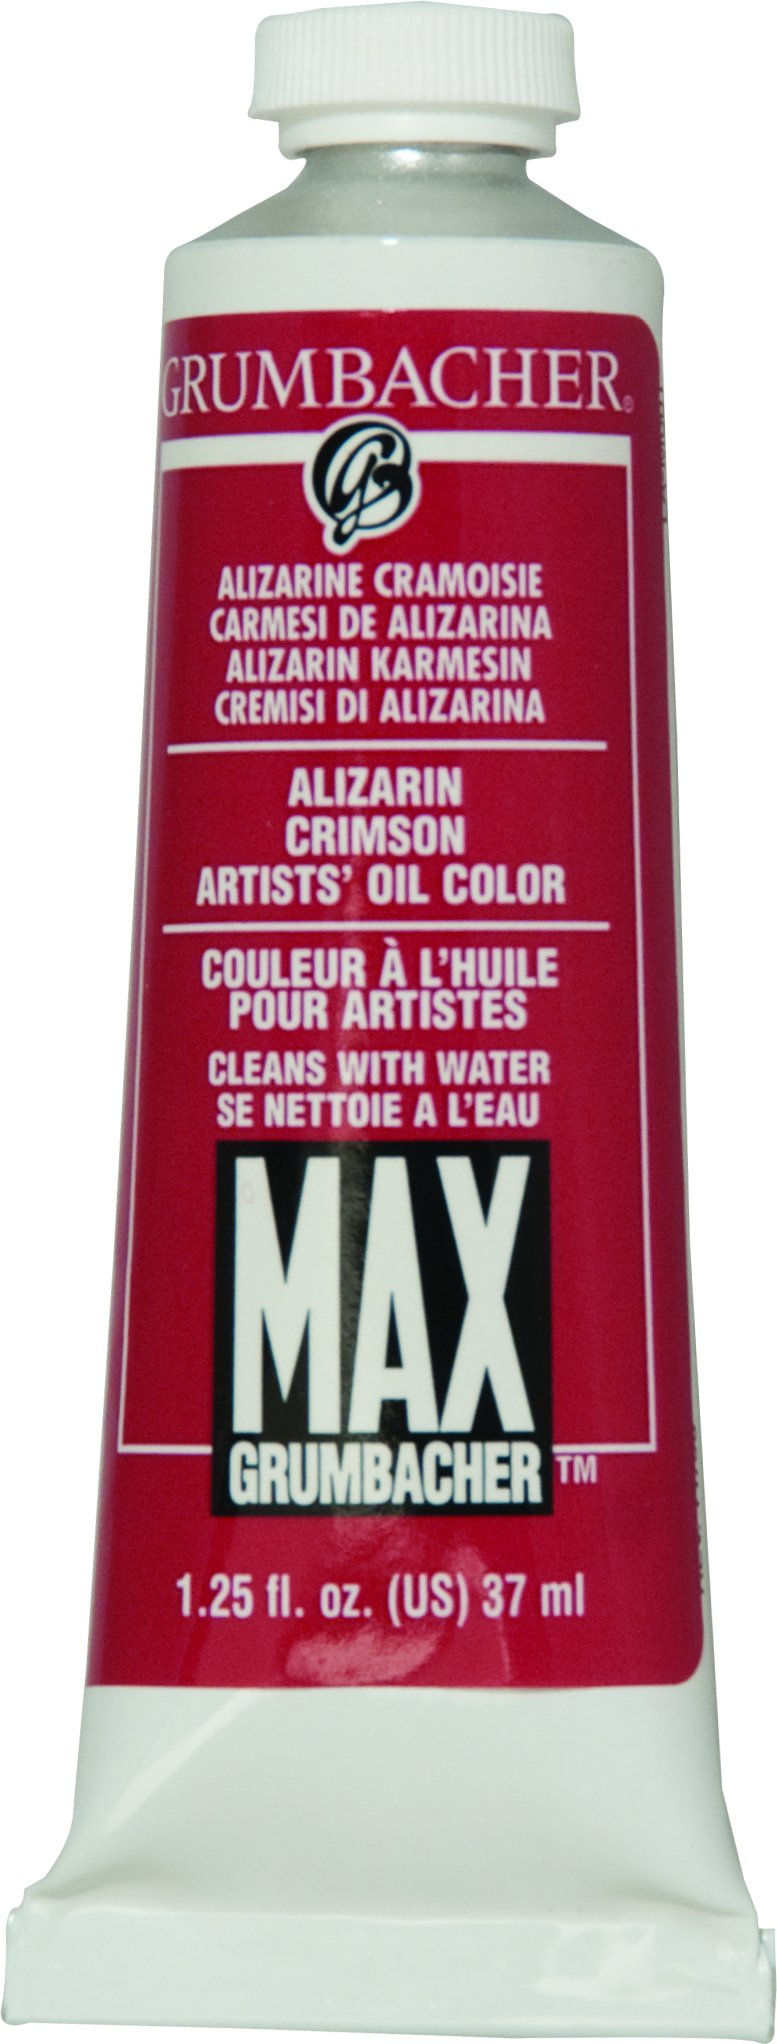 Grumbacher Max Water Miscible Oil Paint, 37ml/1.25 oz, Alizarin Crimson